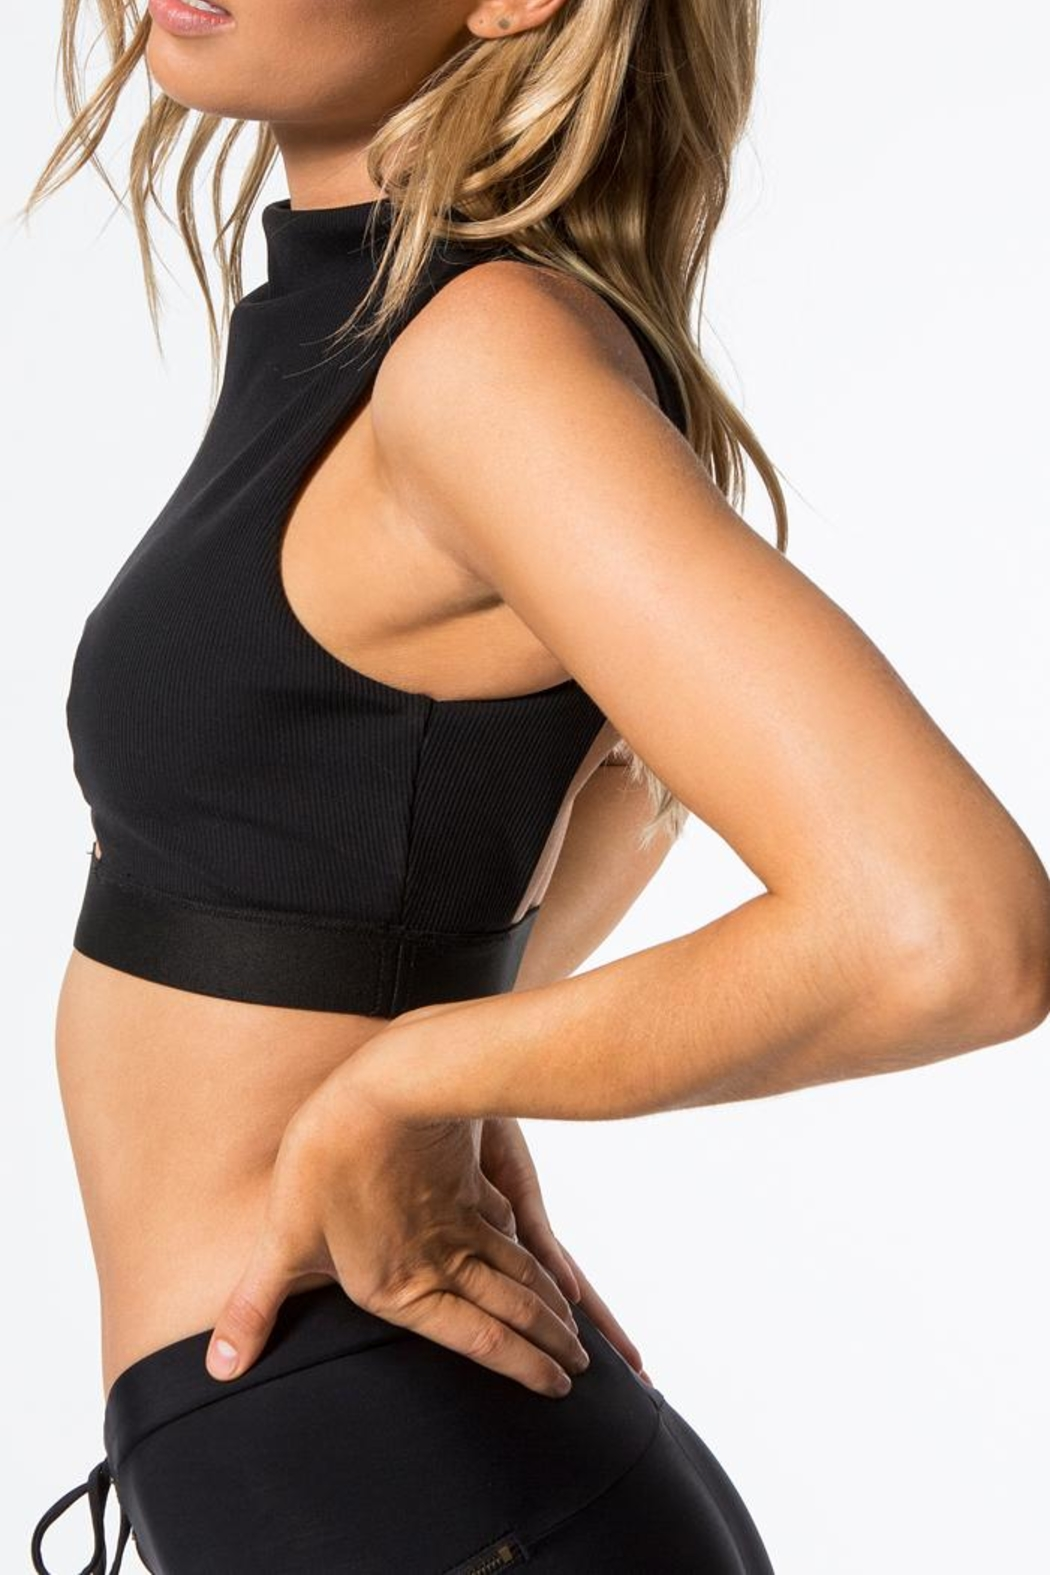 Blue Life Fit Peek-A- Boo Crop-Top/bra - Back Cropped Image